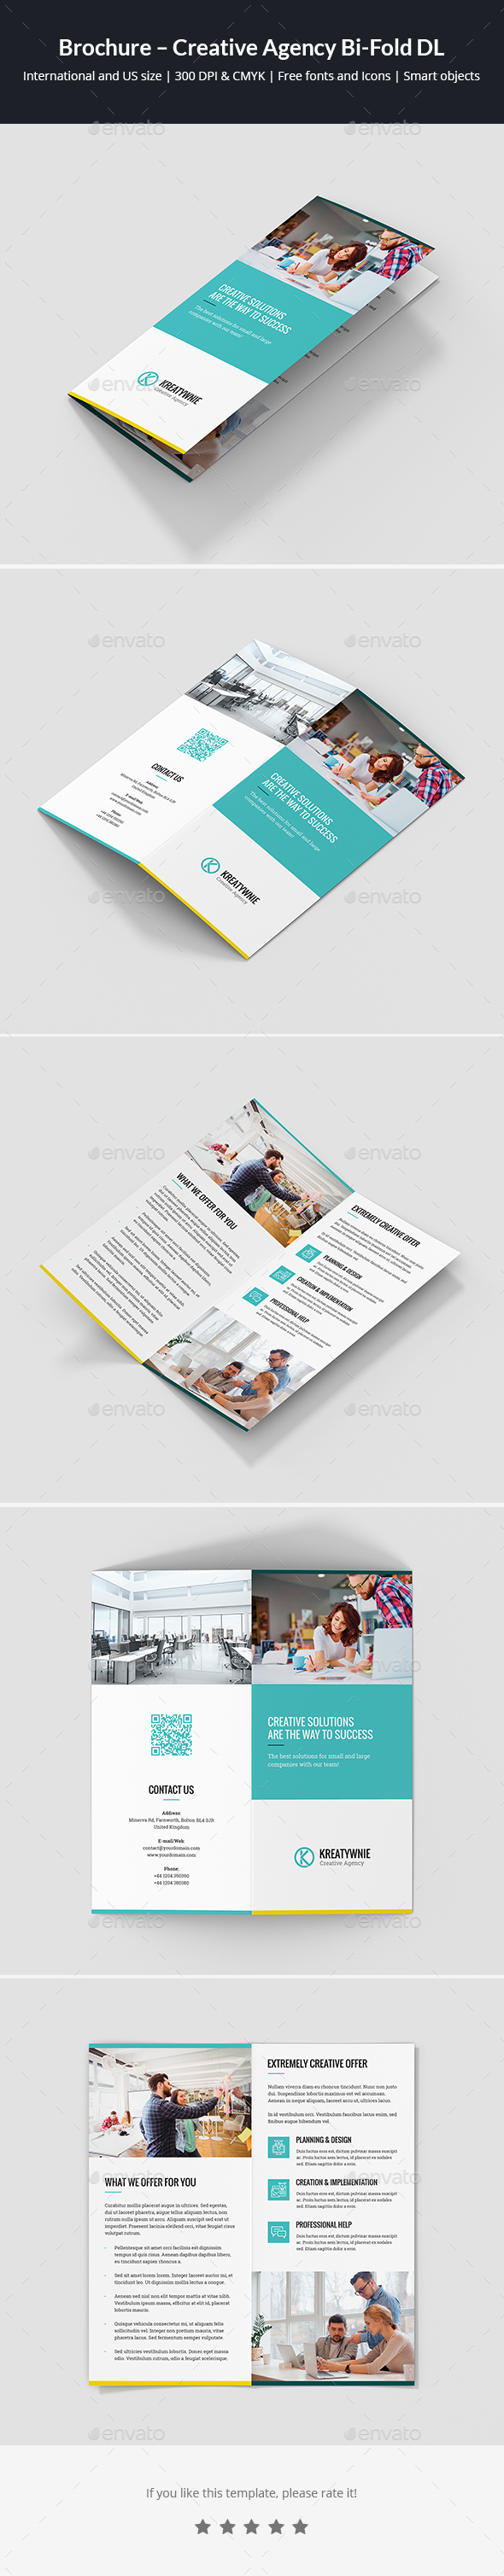 GraphicRiver Brochure Creative Agency Bi-Fold DL 21138085